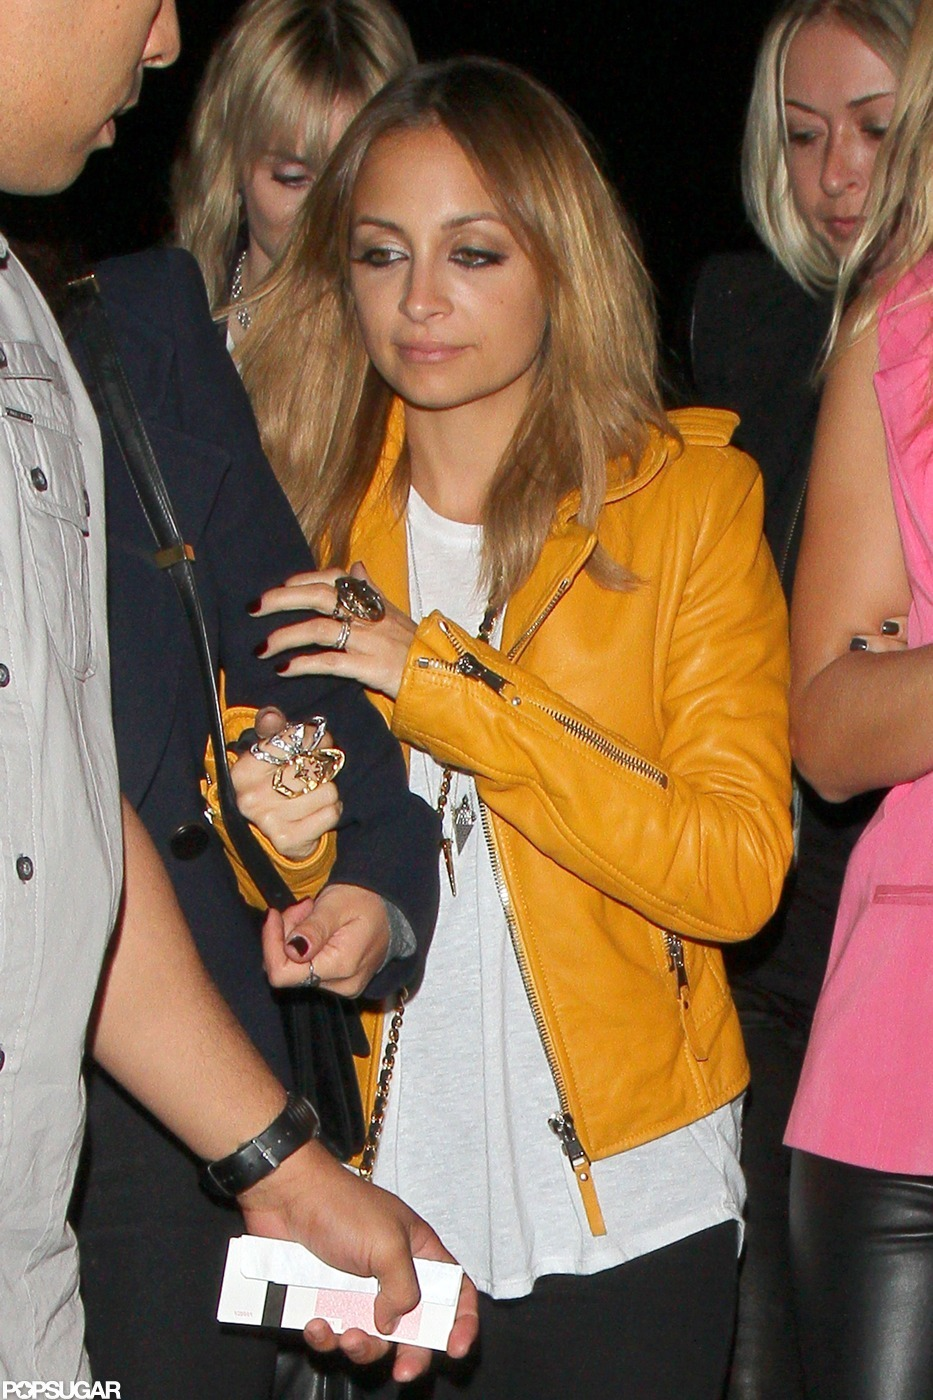 Nicole Richie wore a yellow leather jacket.